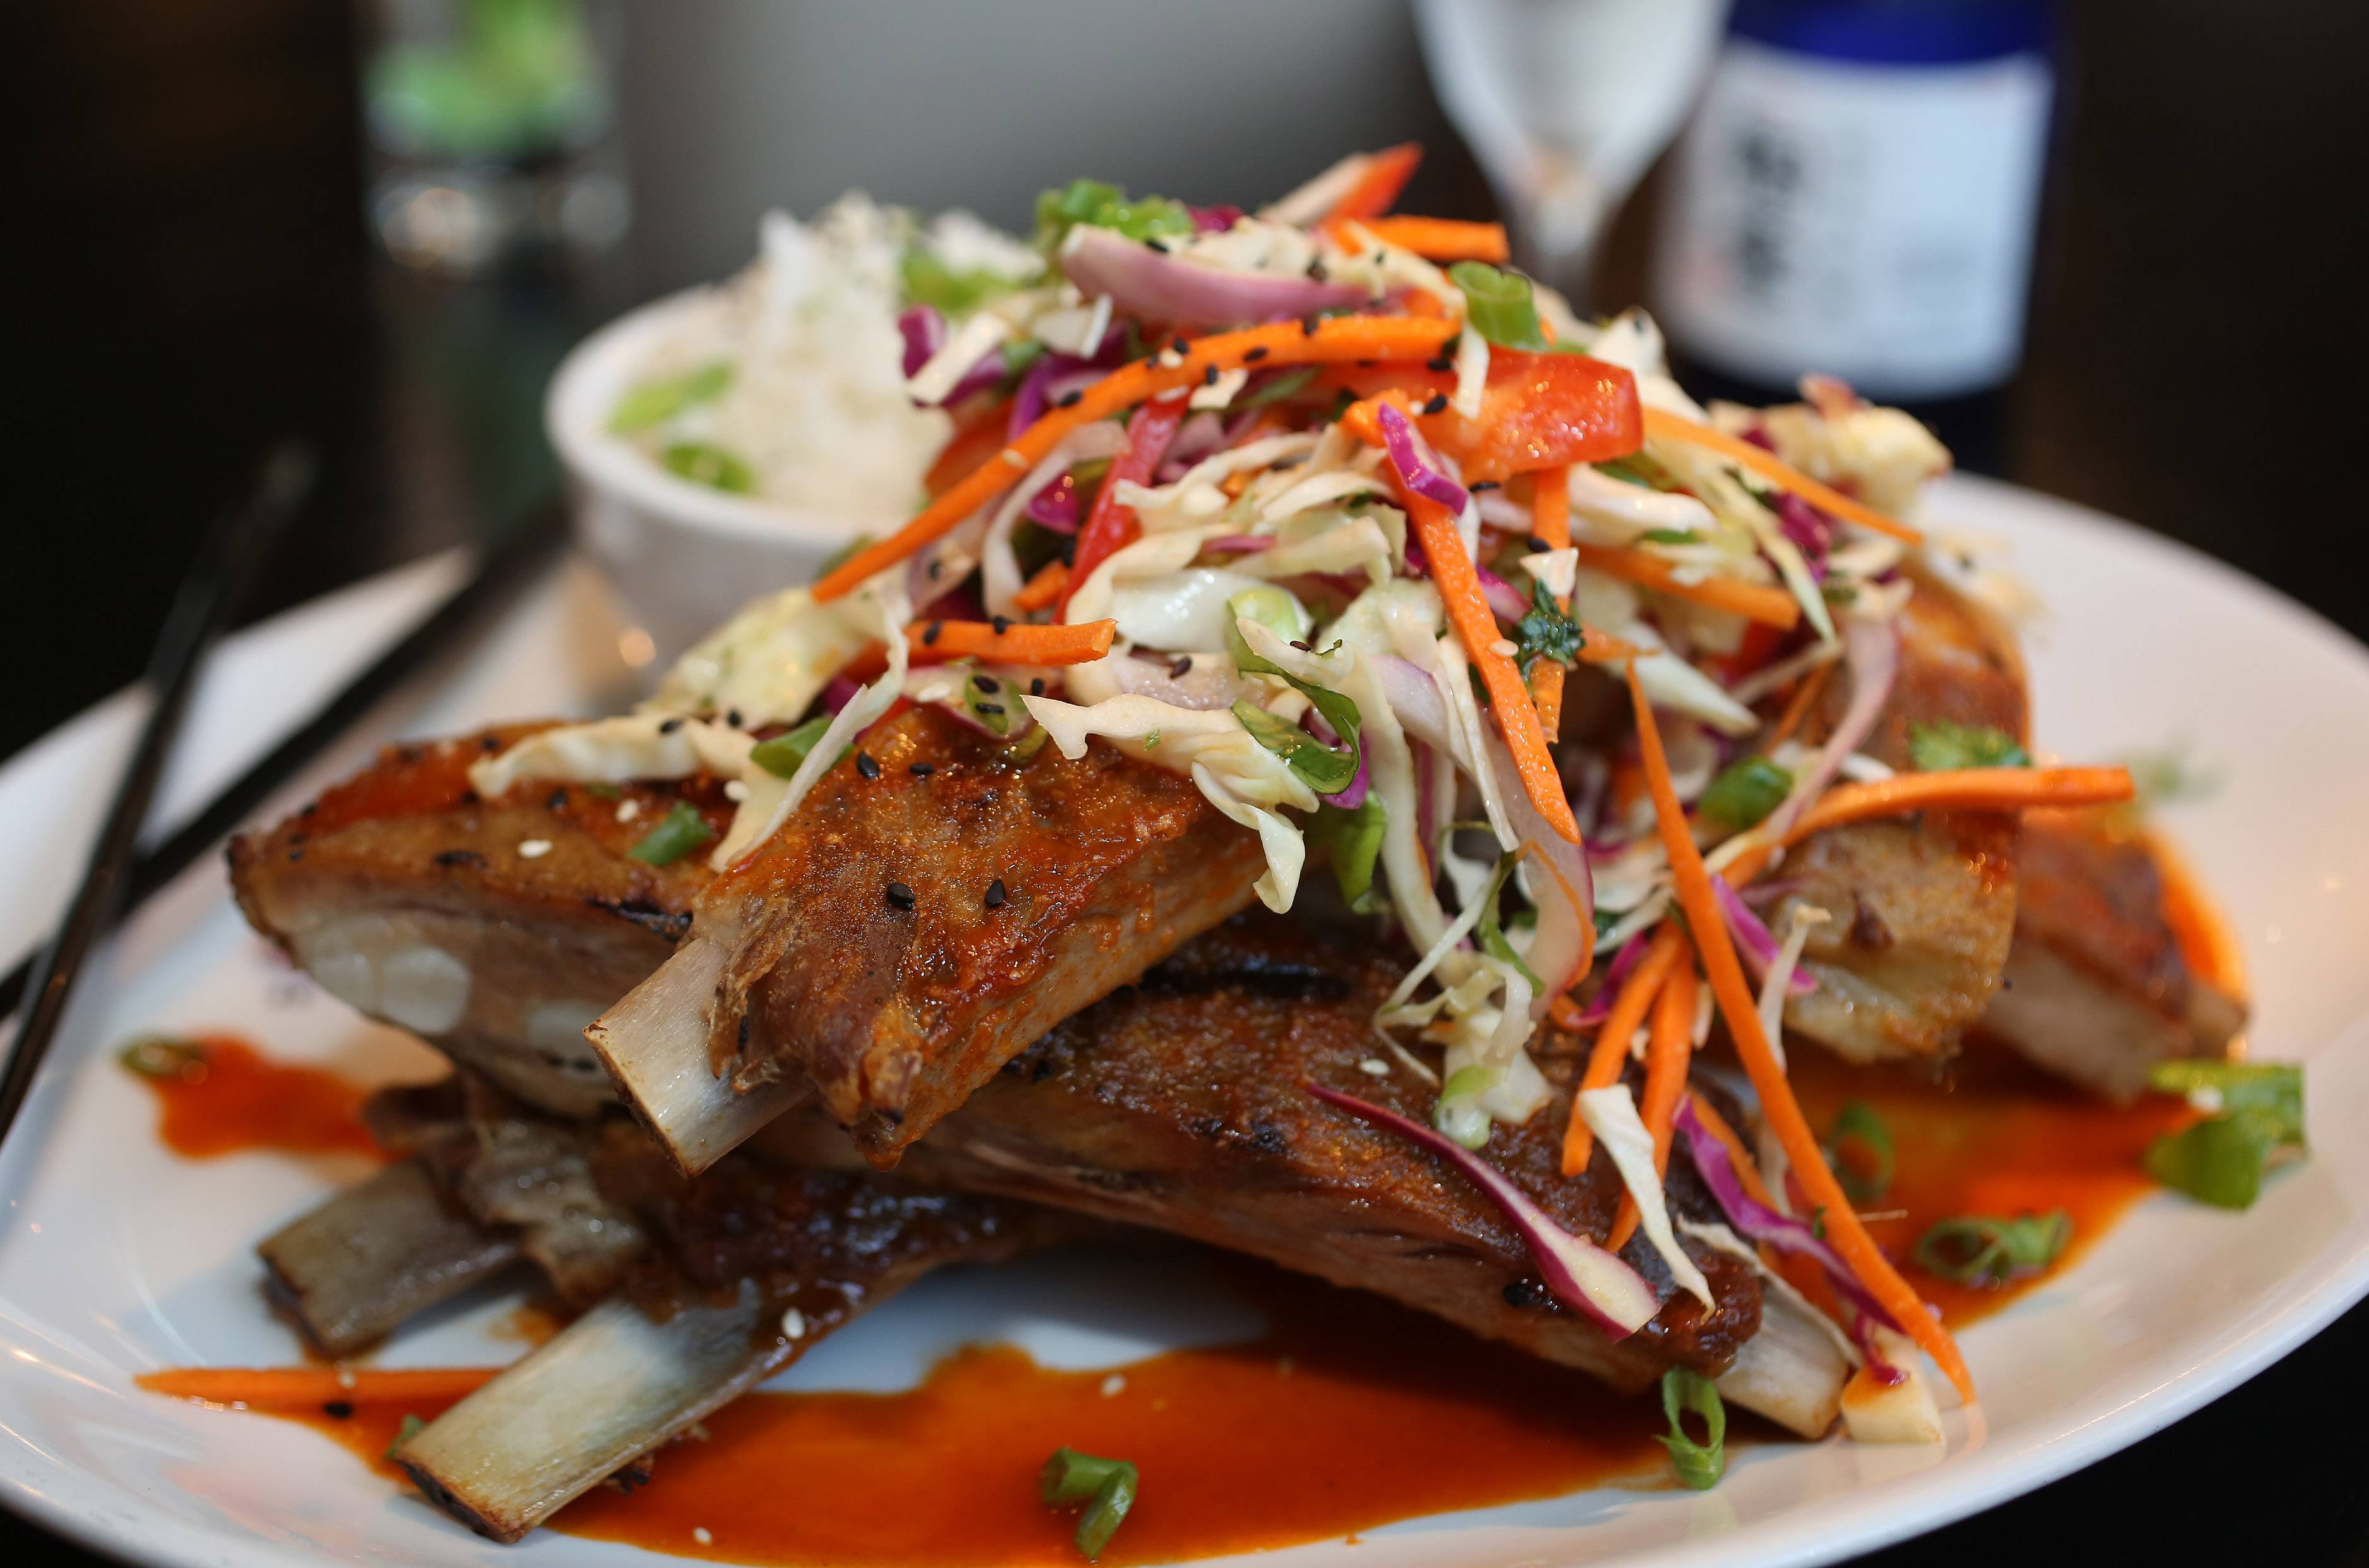 Karma's ribs are accompanied by a sweet and sour slaw, scallion rice and a spicy, chili glaze.